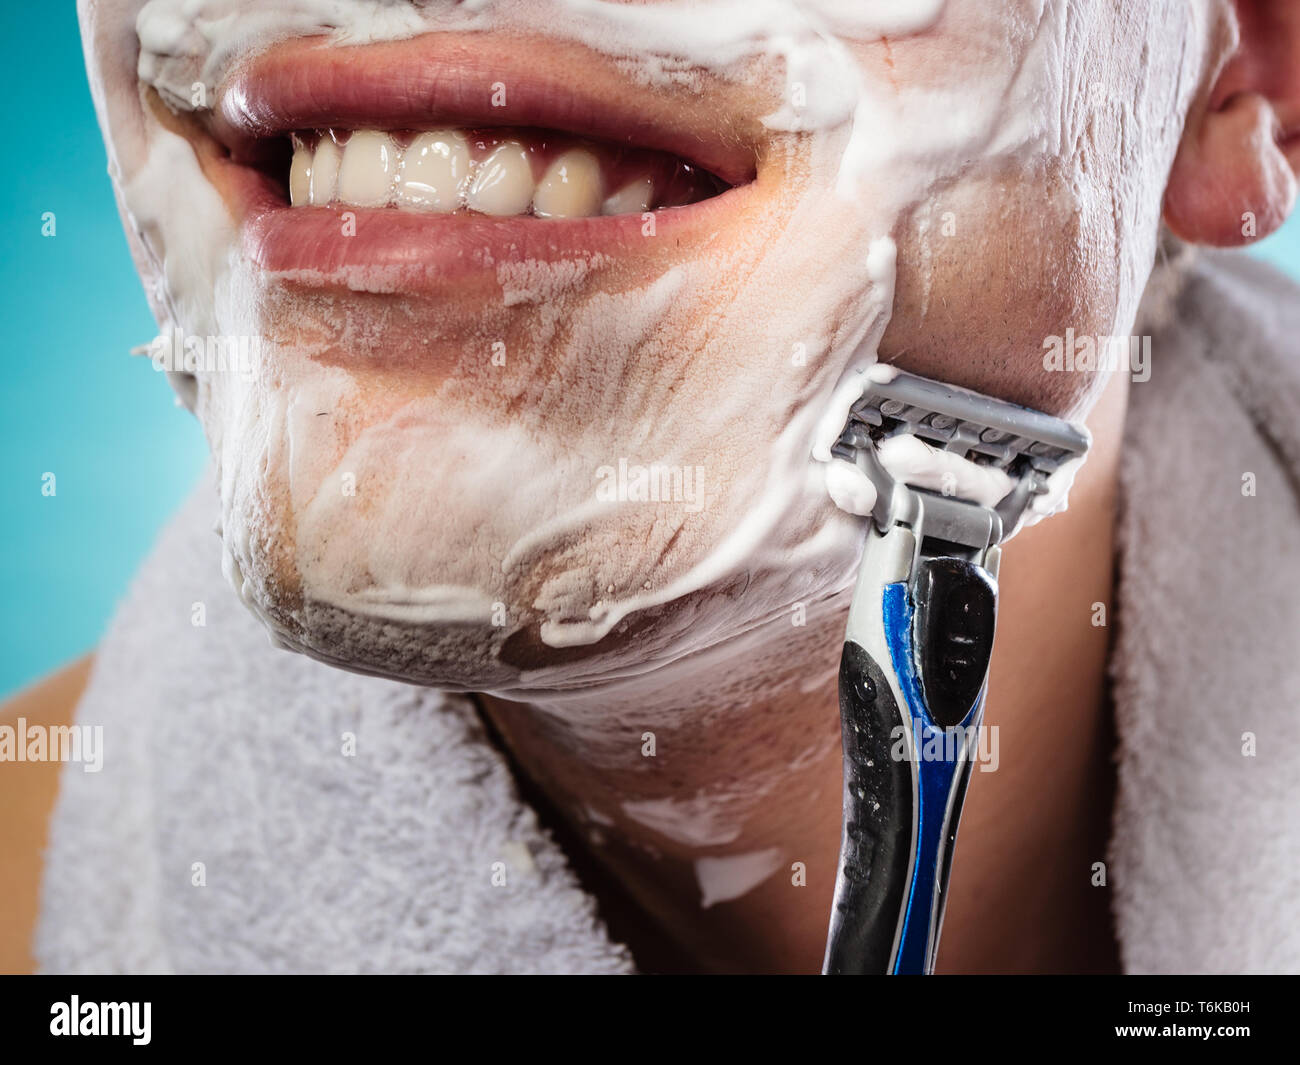 Health beauty and skin care concept. Handsome young bearded man with foam on face shaving with razor on blue background. Unusual wide angle view - Stock Image